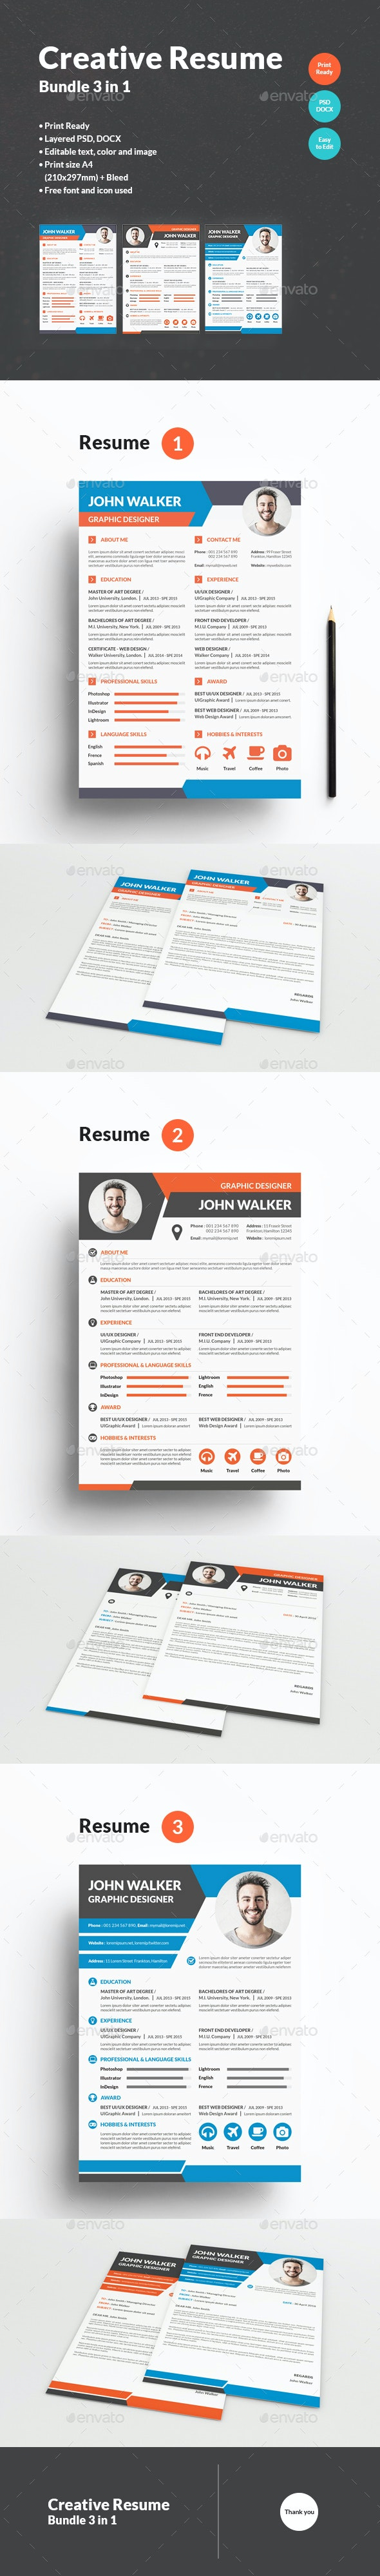 Creative Resume Bundle 3 in 1 - Resumes Stationery